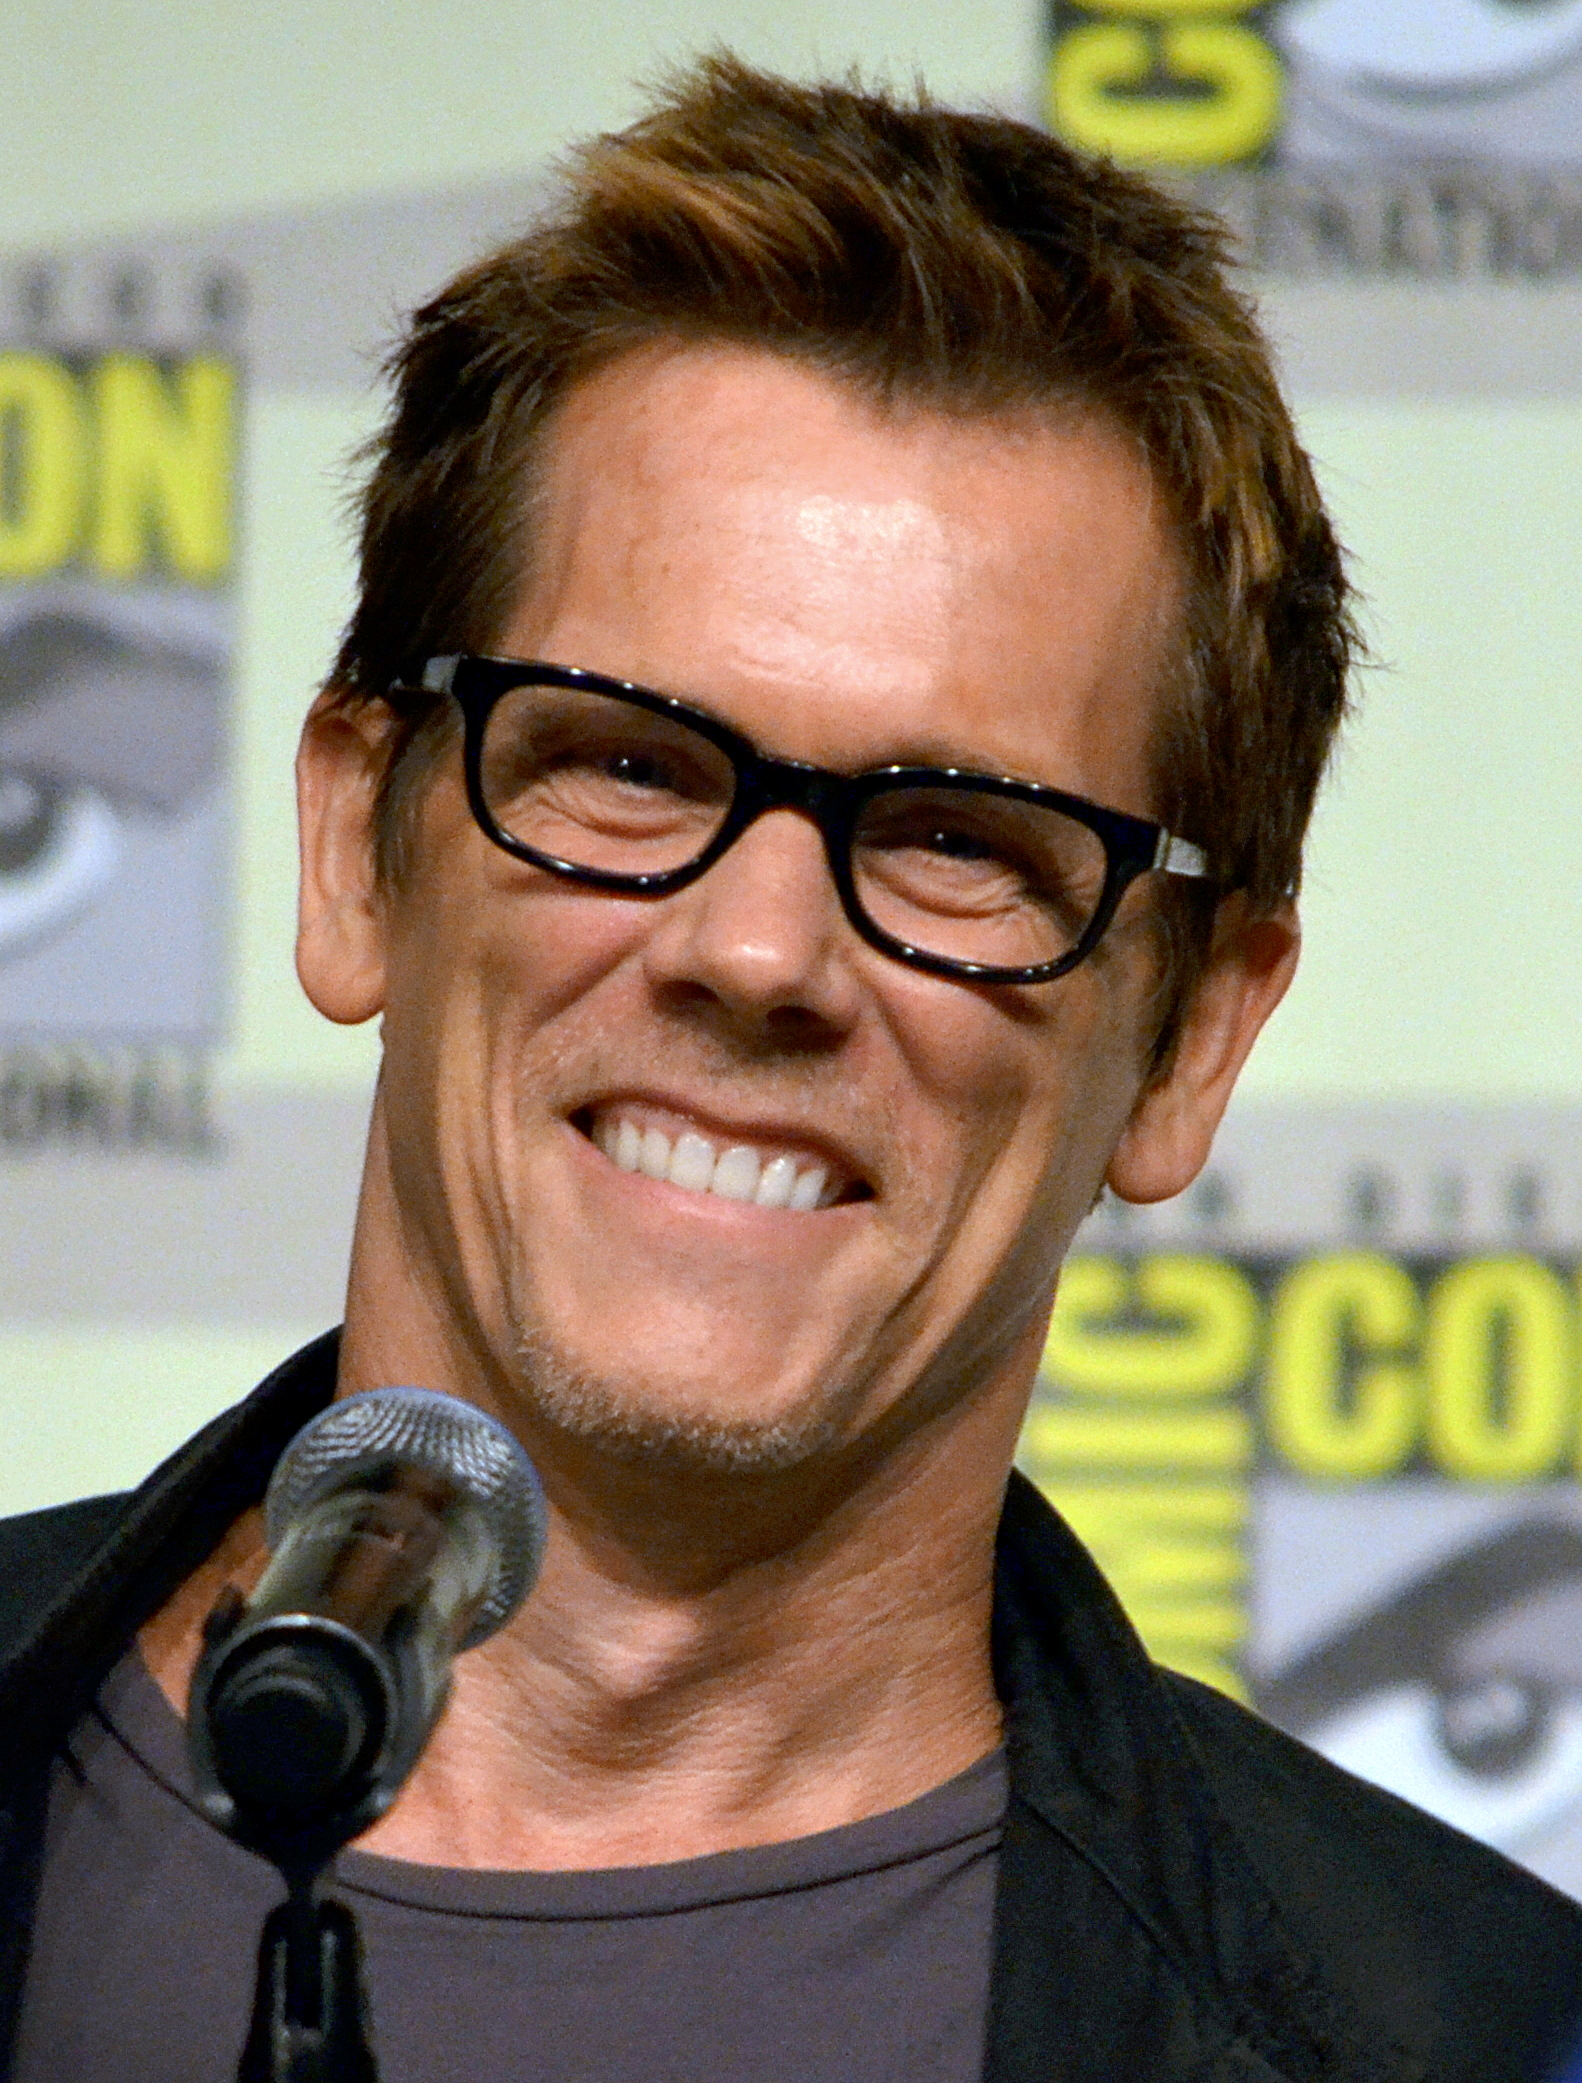 Description Kevin Bacon Comic-Con 2012.jpg